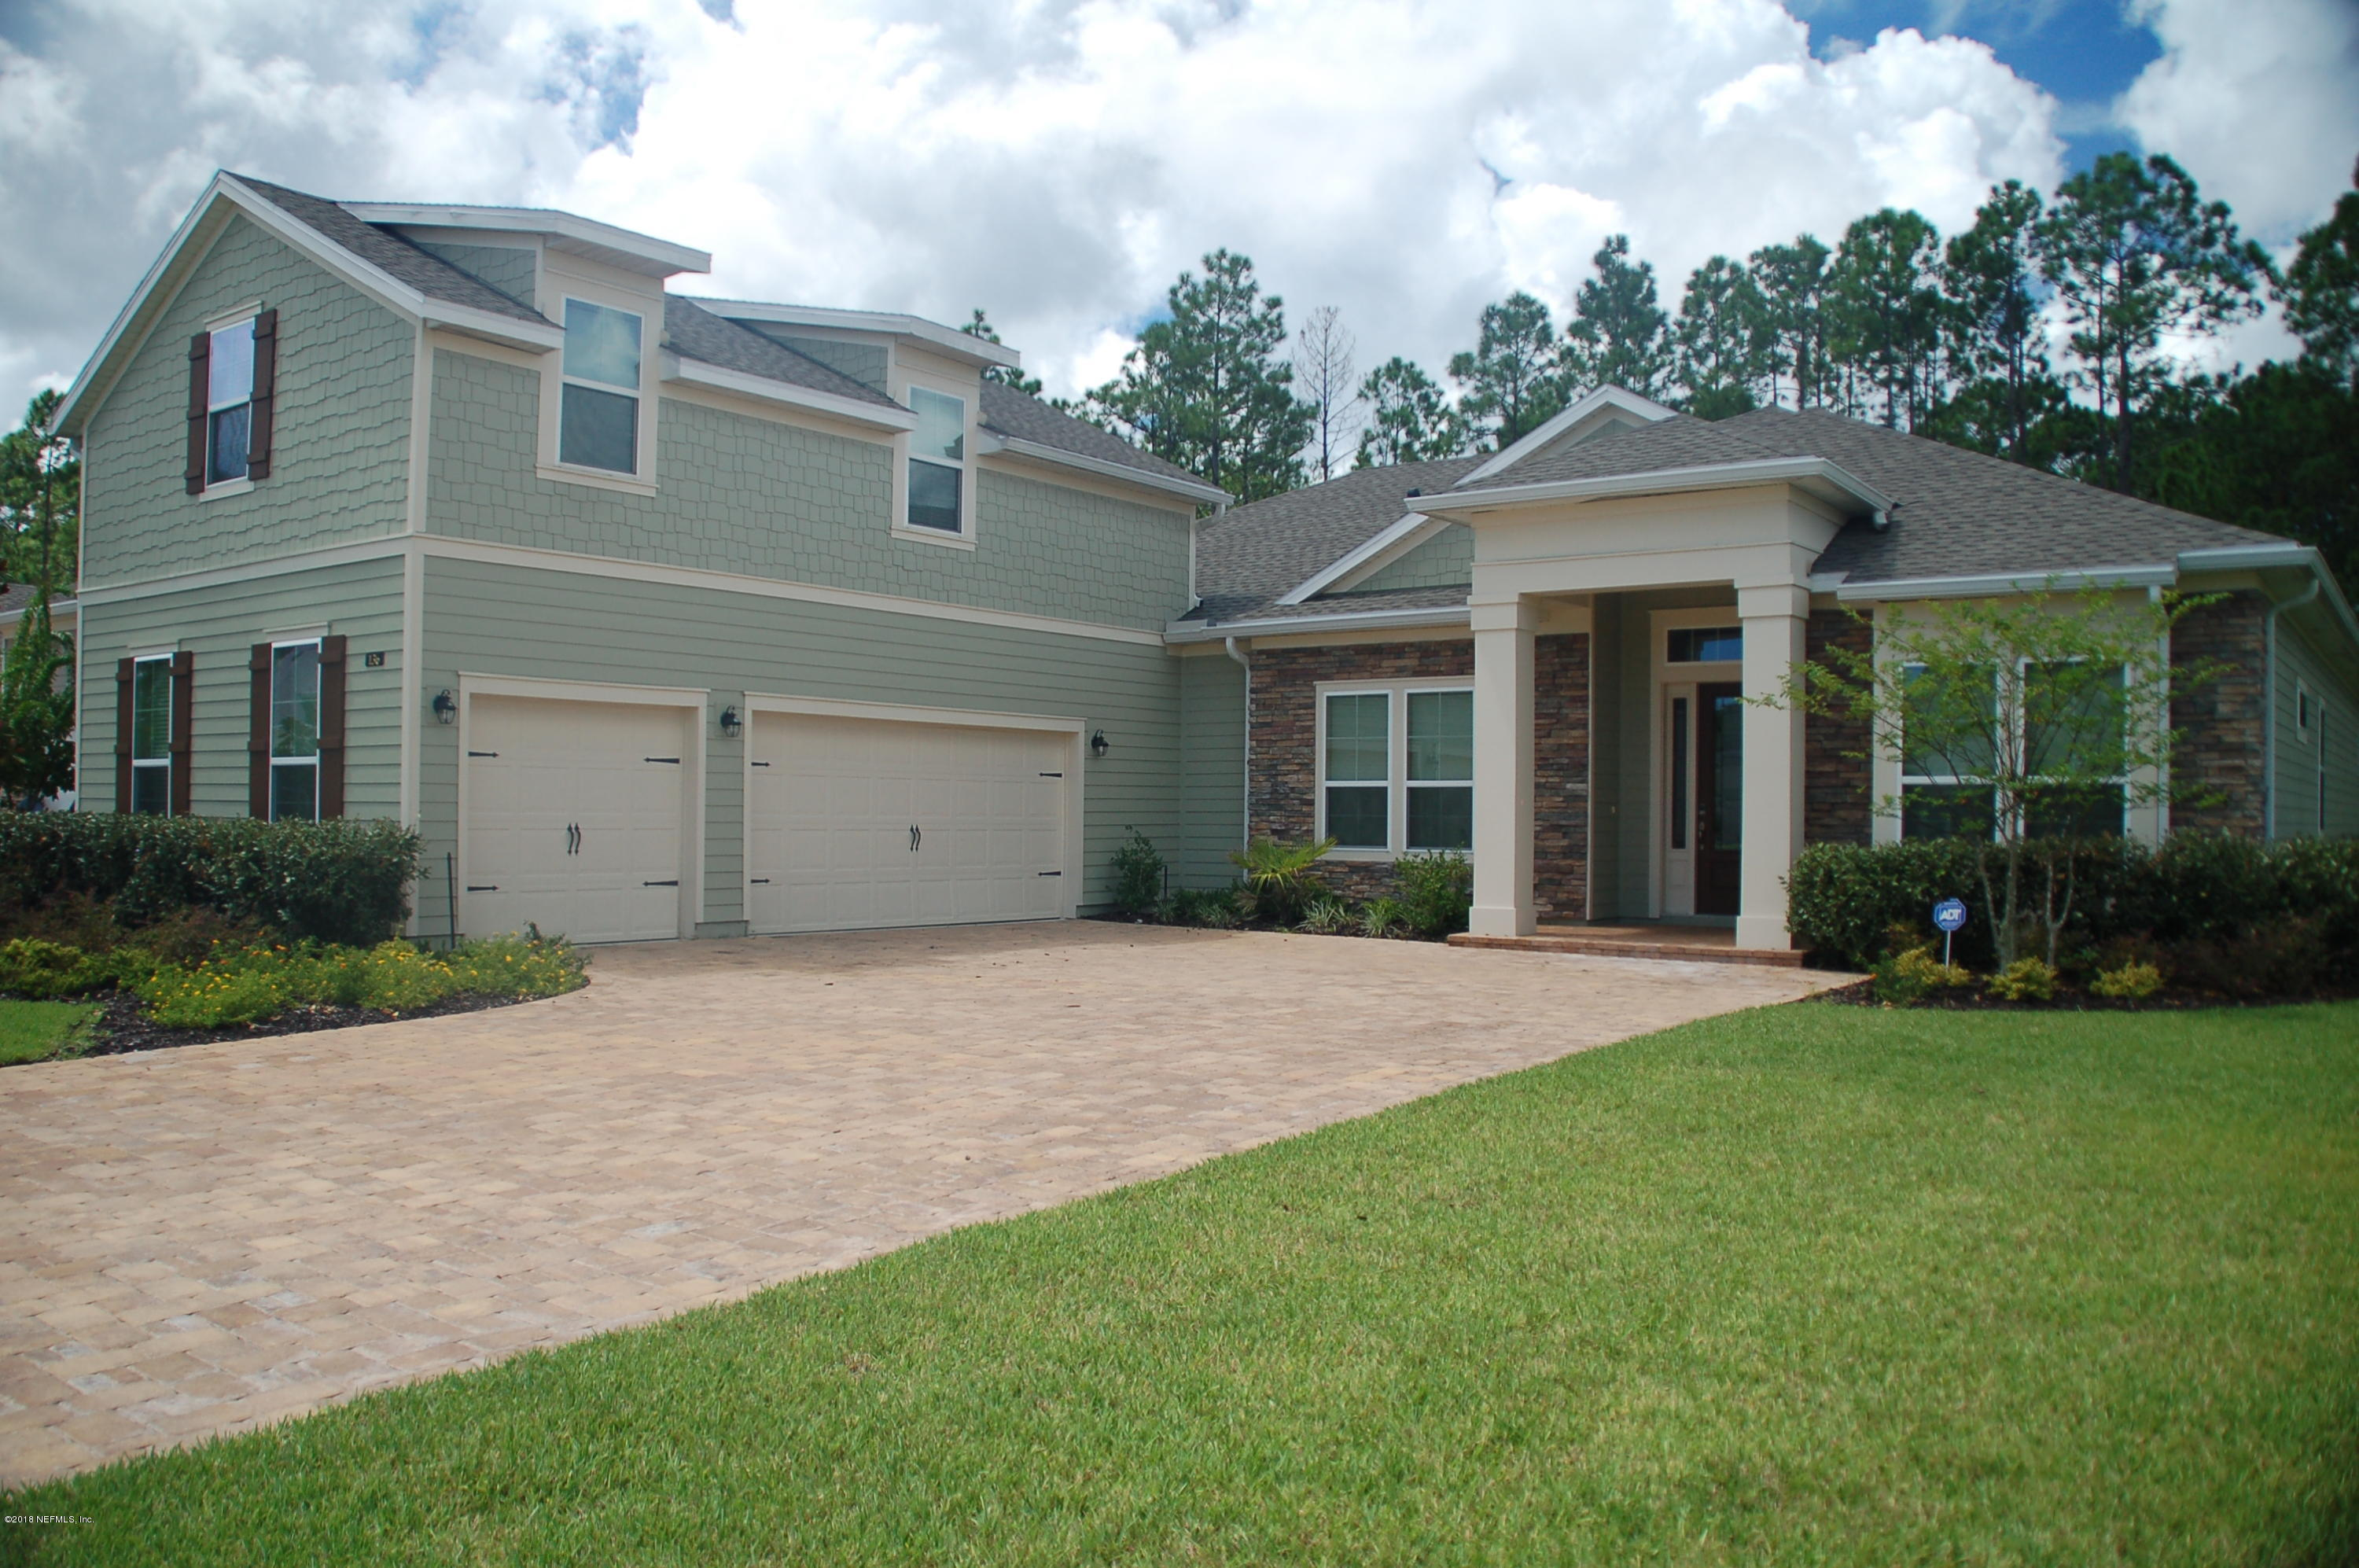 136 LAZO, ST AUGUSTINE, FLORIDA 32095, 5 Bedrooms Bedrooms, ,5 BathroomsBathrooms,Residential - single family,For sale,LAZO,968904